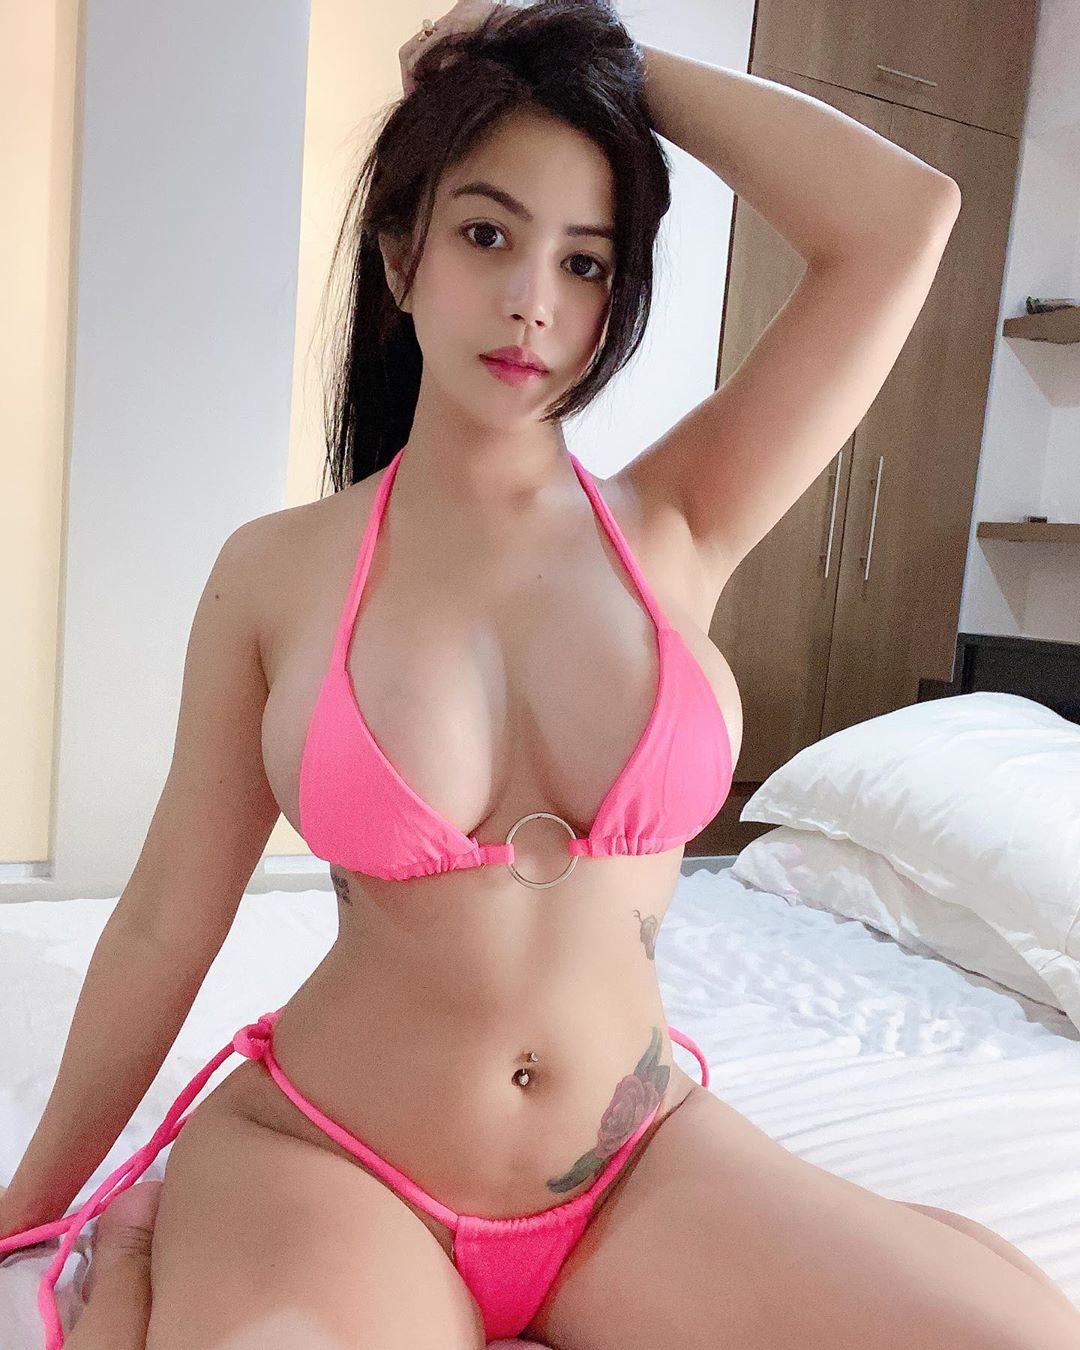 Nuru special massage and other / GFE / come and get me